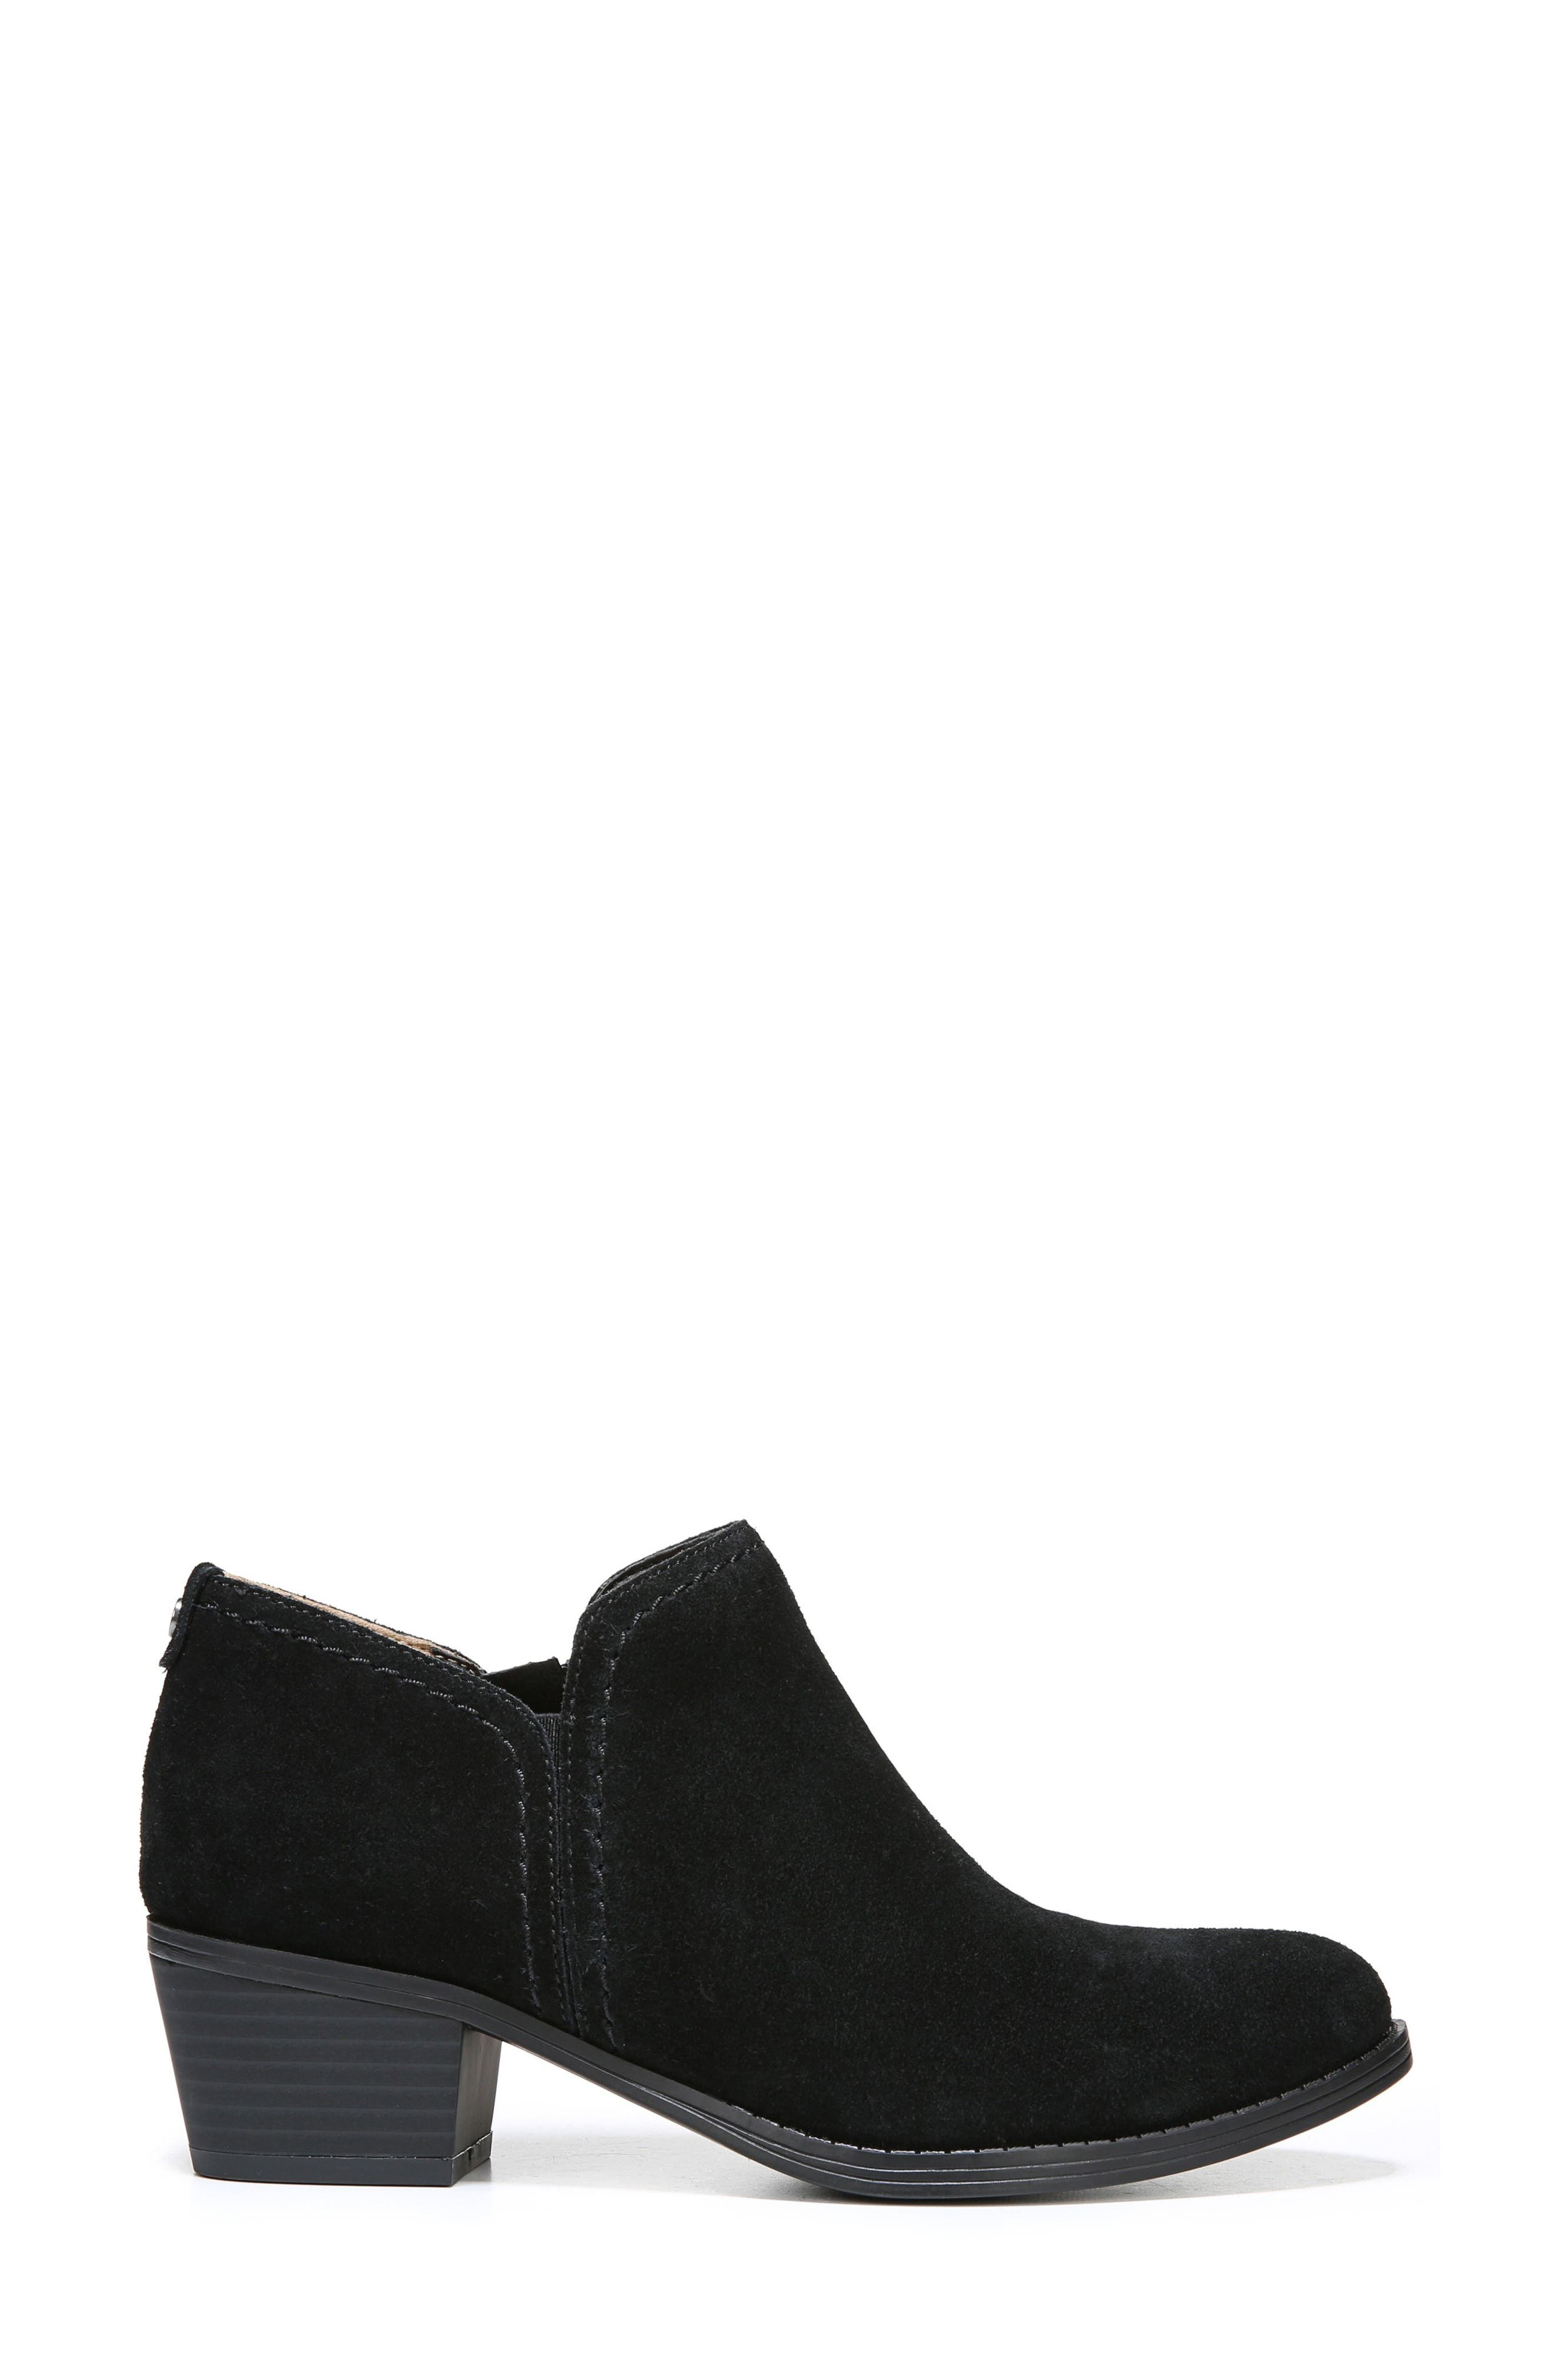 'Zarie' Block Heel Bootie,                             Alternate thumbnail 3, color,                             Black Suede